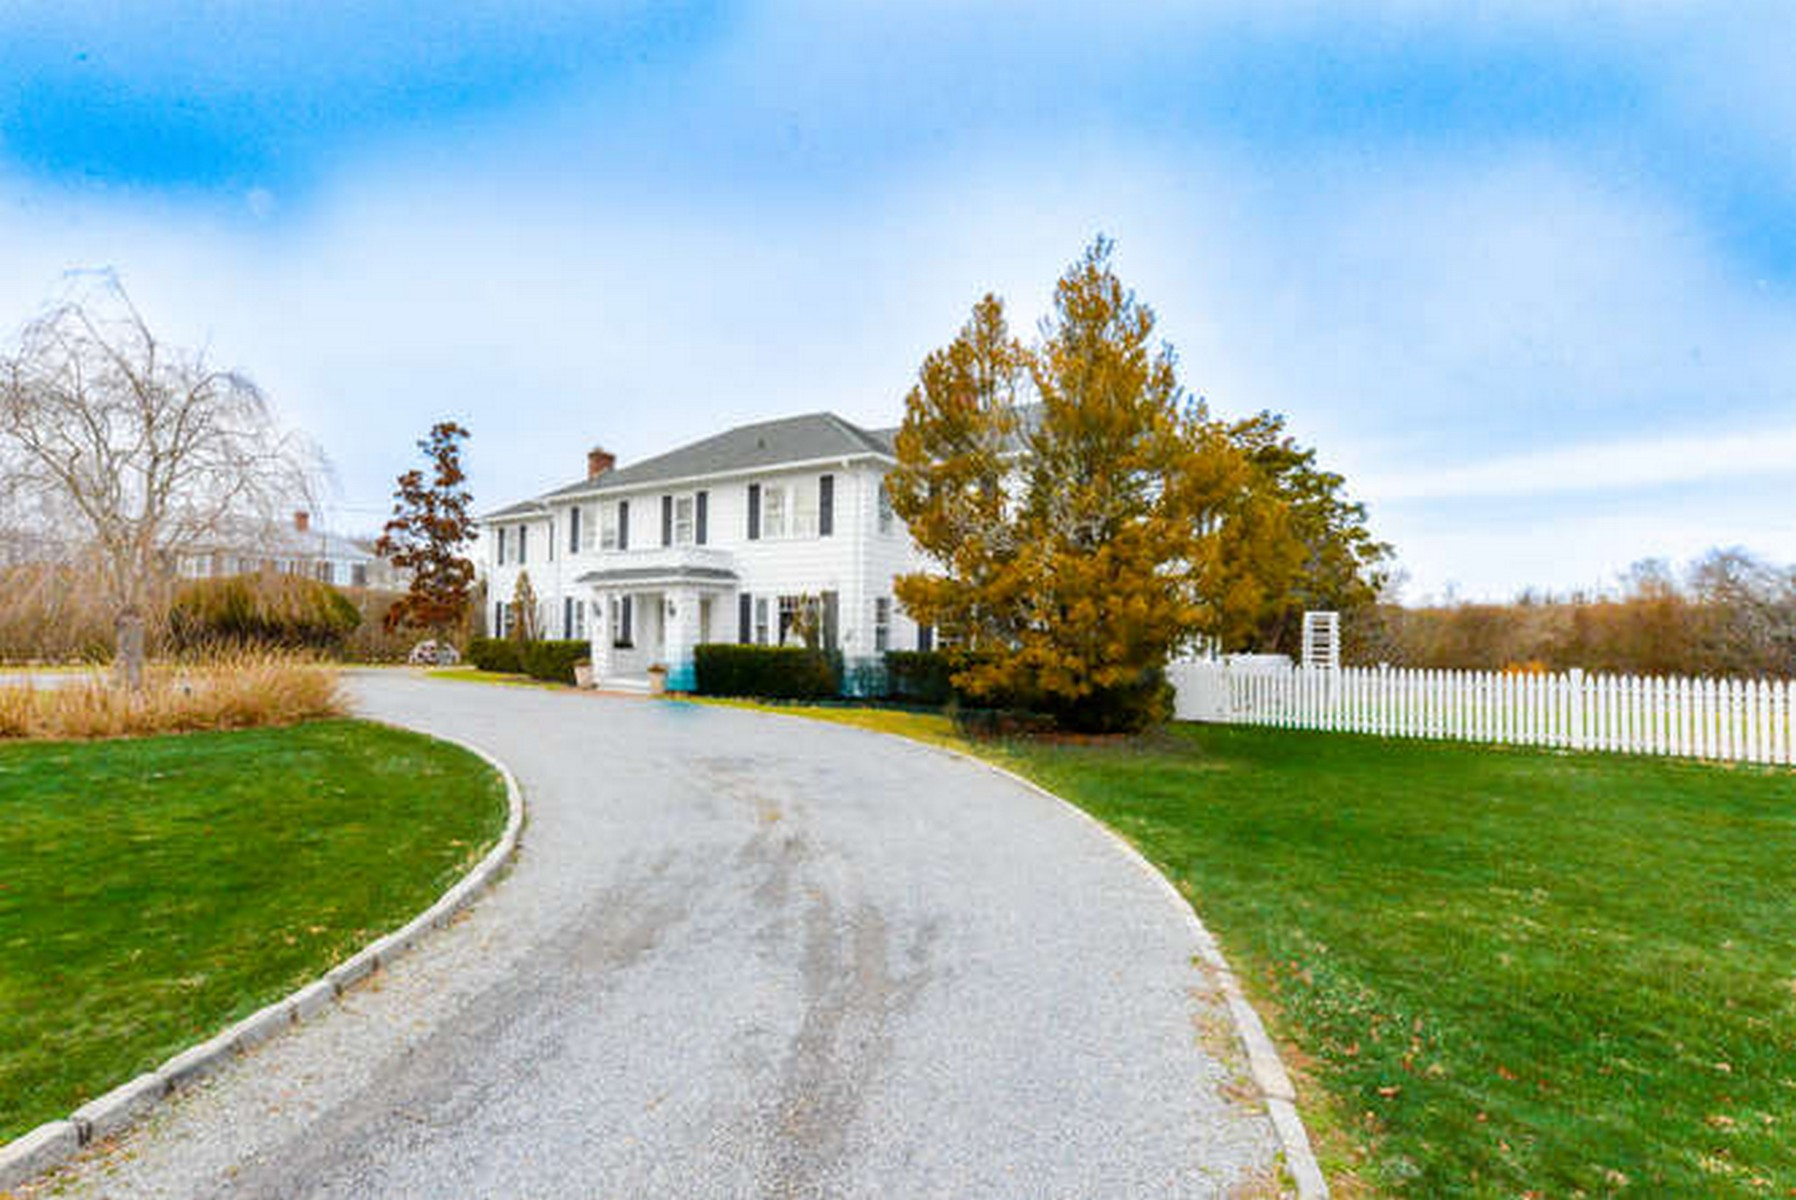 Single Family Home for Sale at Village Family Retreat, Country Club Location 22 Oneck Road Westhampton Beach, New York, 11978 United States